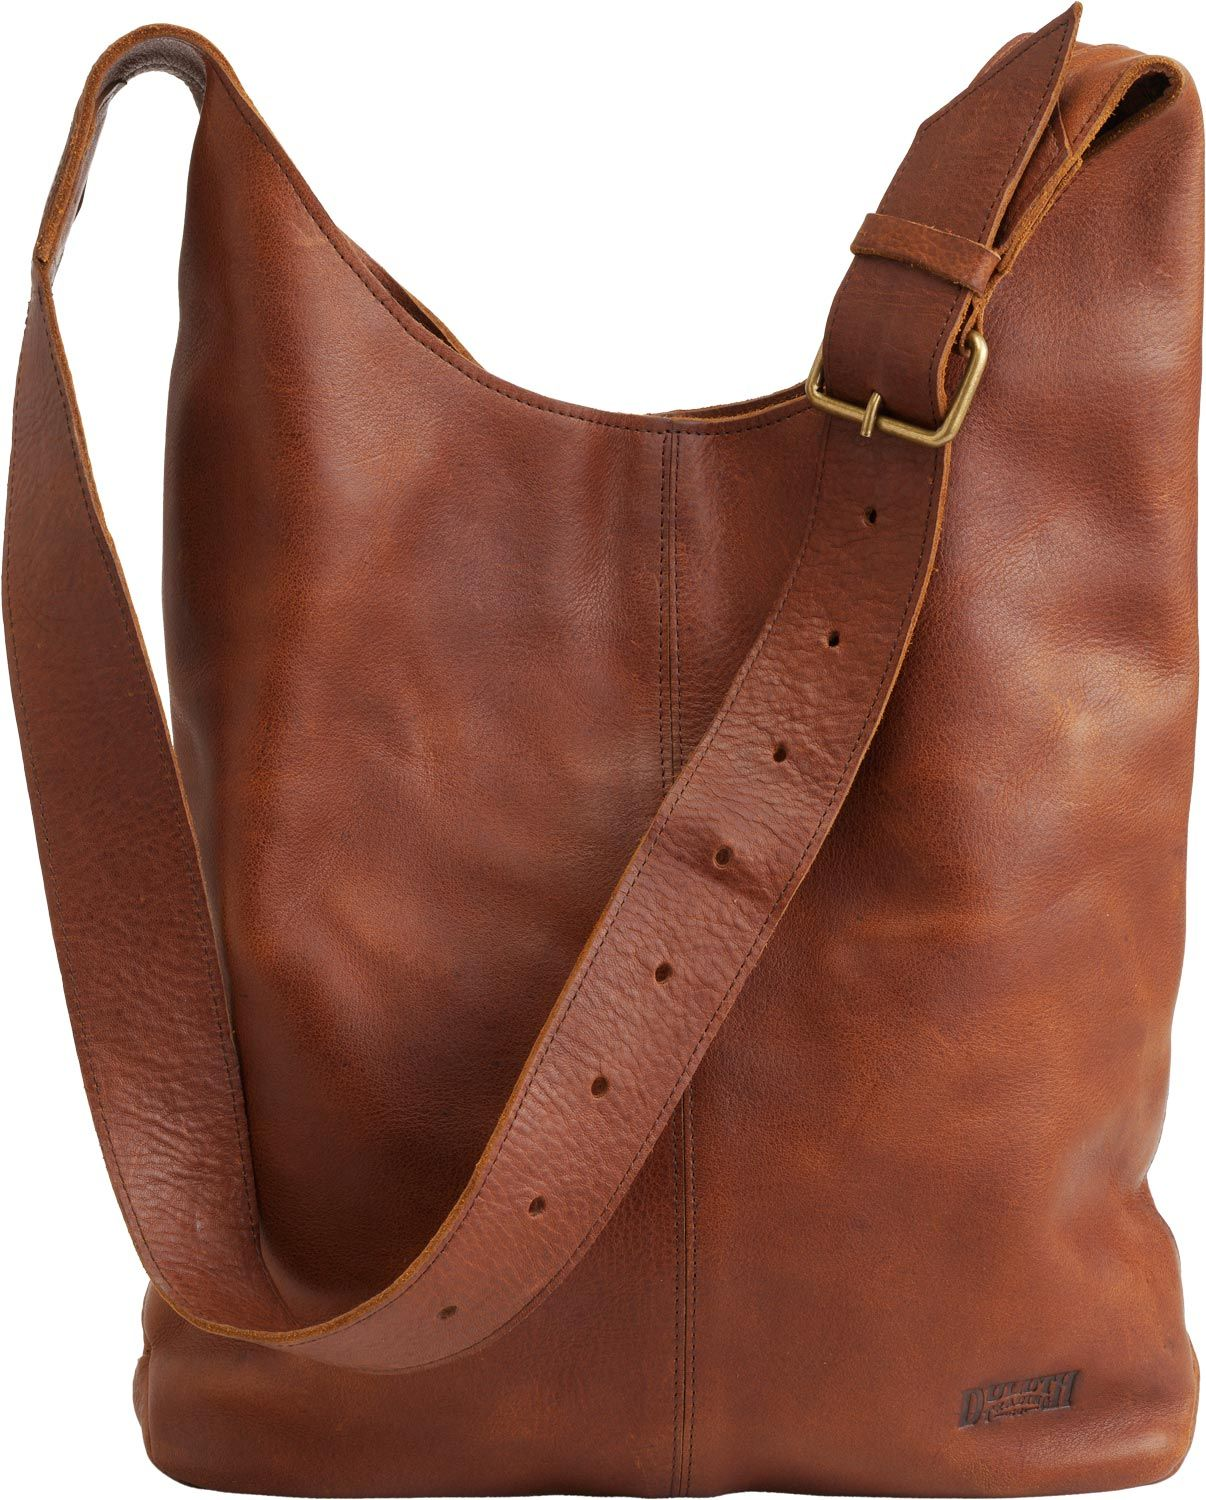 748845eca5fe Lifetime Leather Crossbody Sling Bag lives up to its name with timeless  good looks that you ll still love a decade from now.